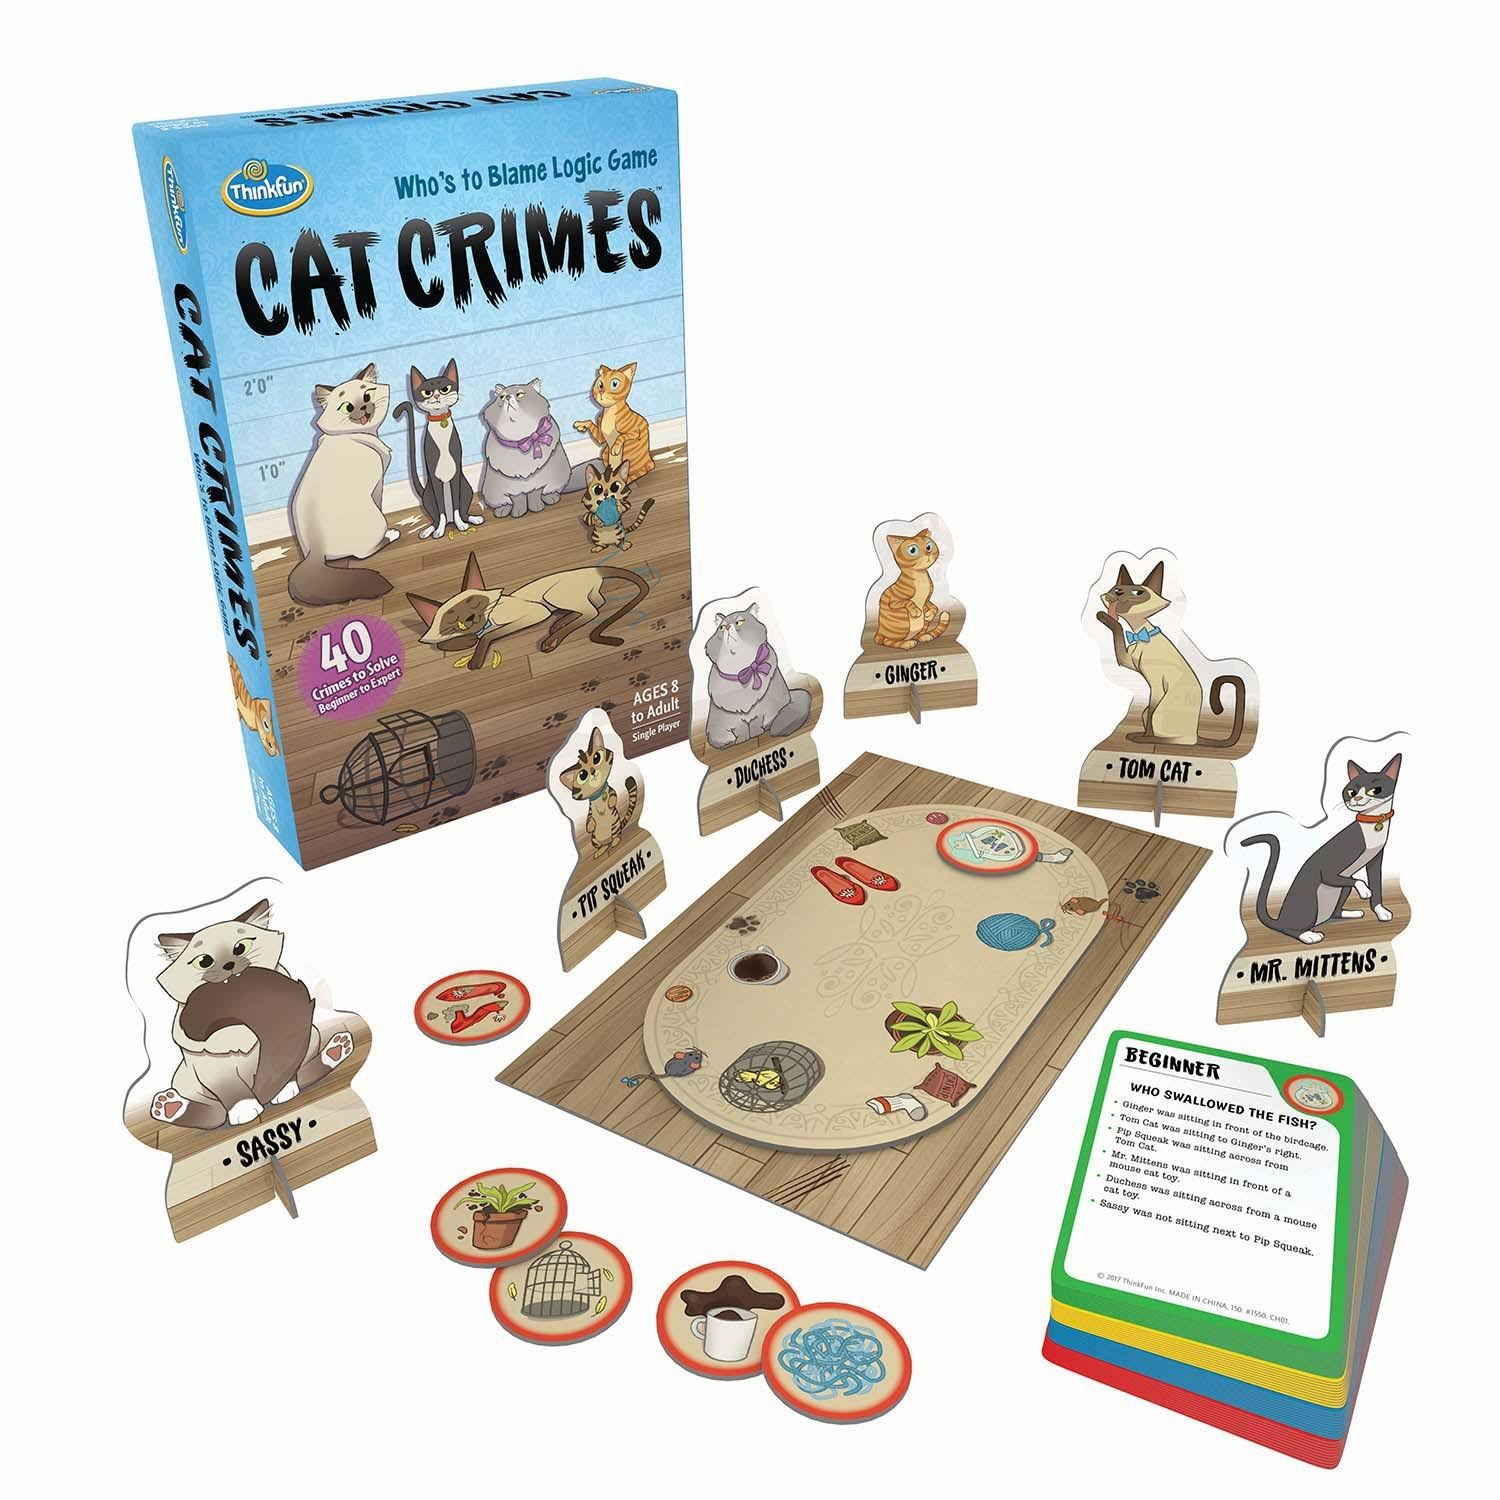 ThinkFun Cat Crimes Logic Game